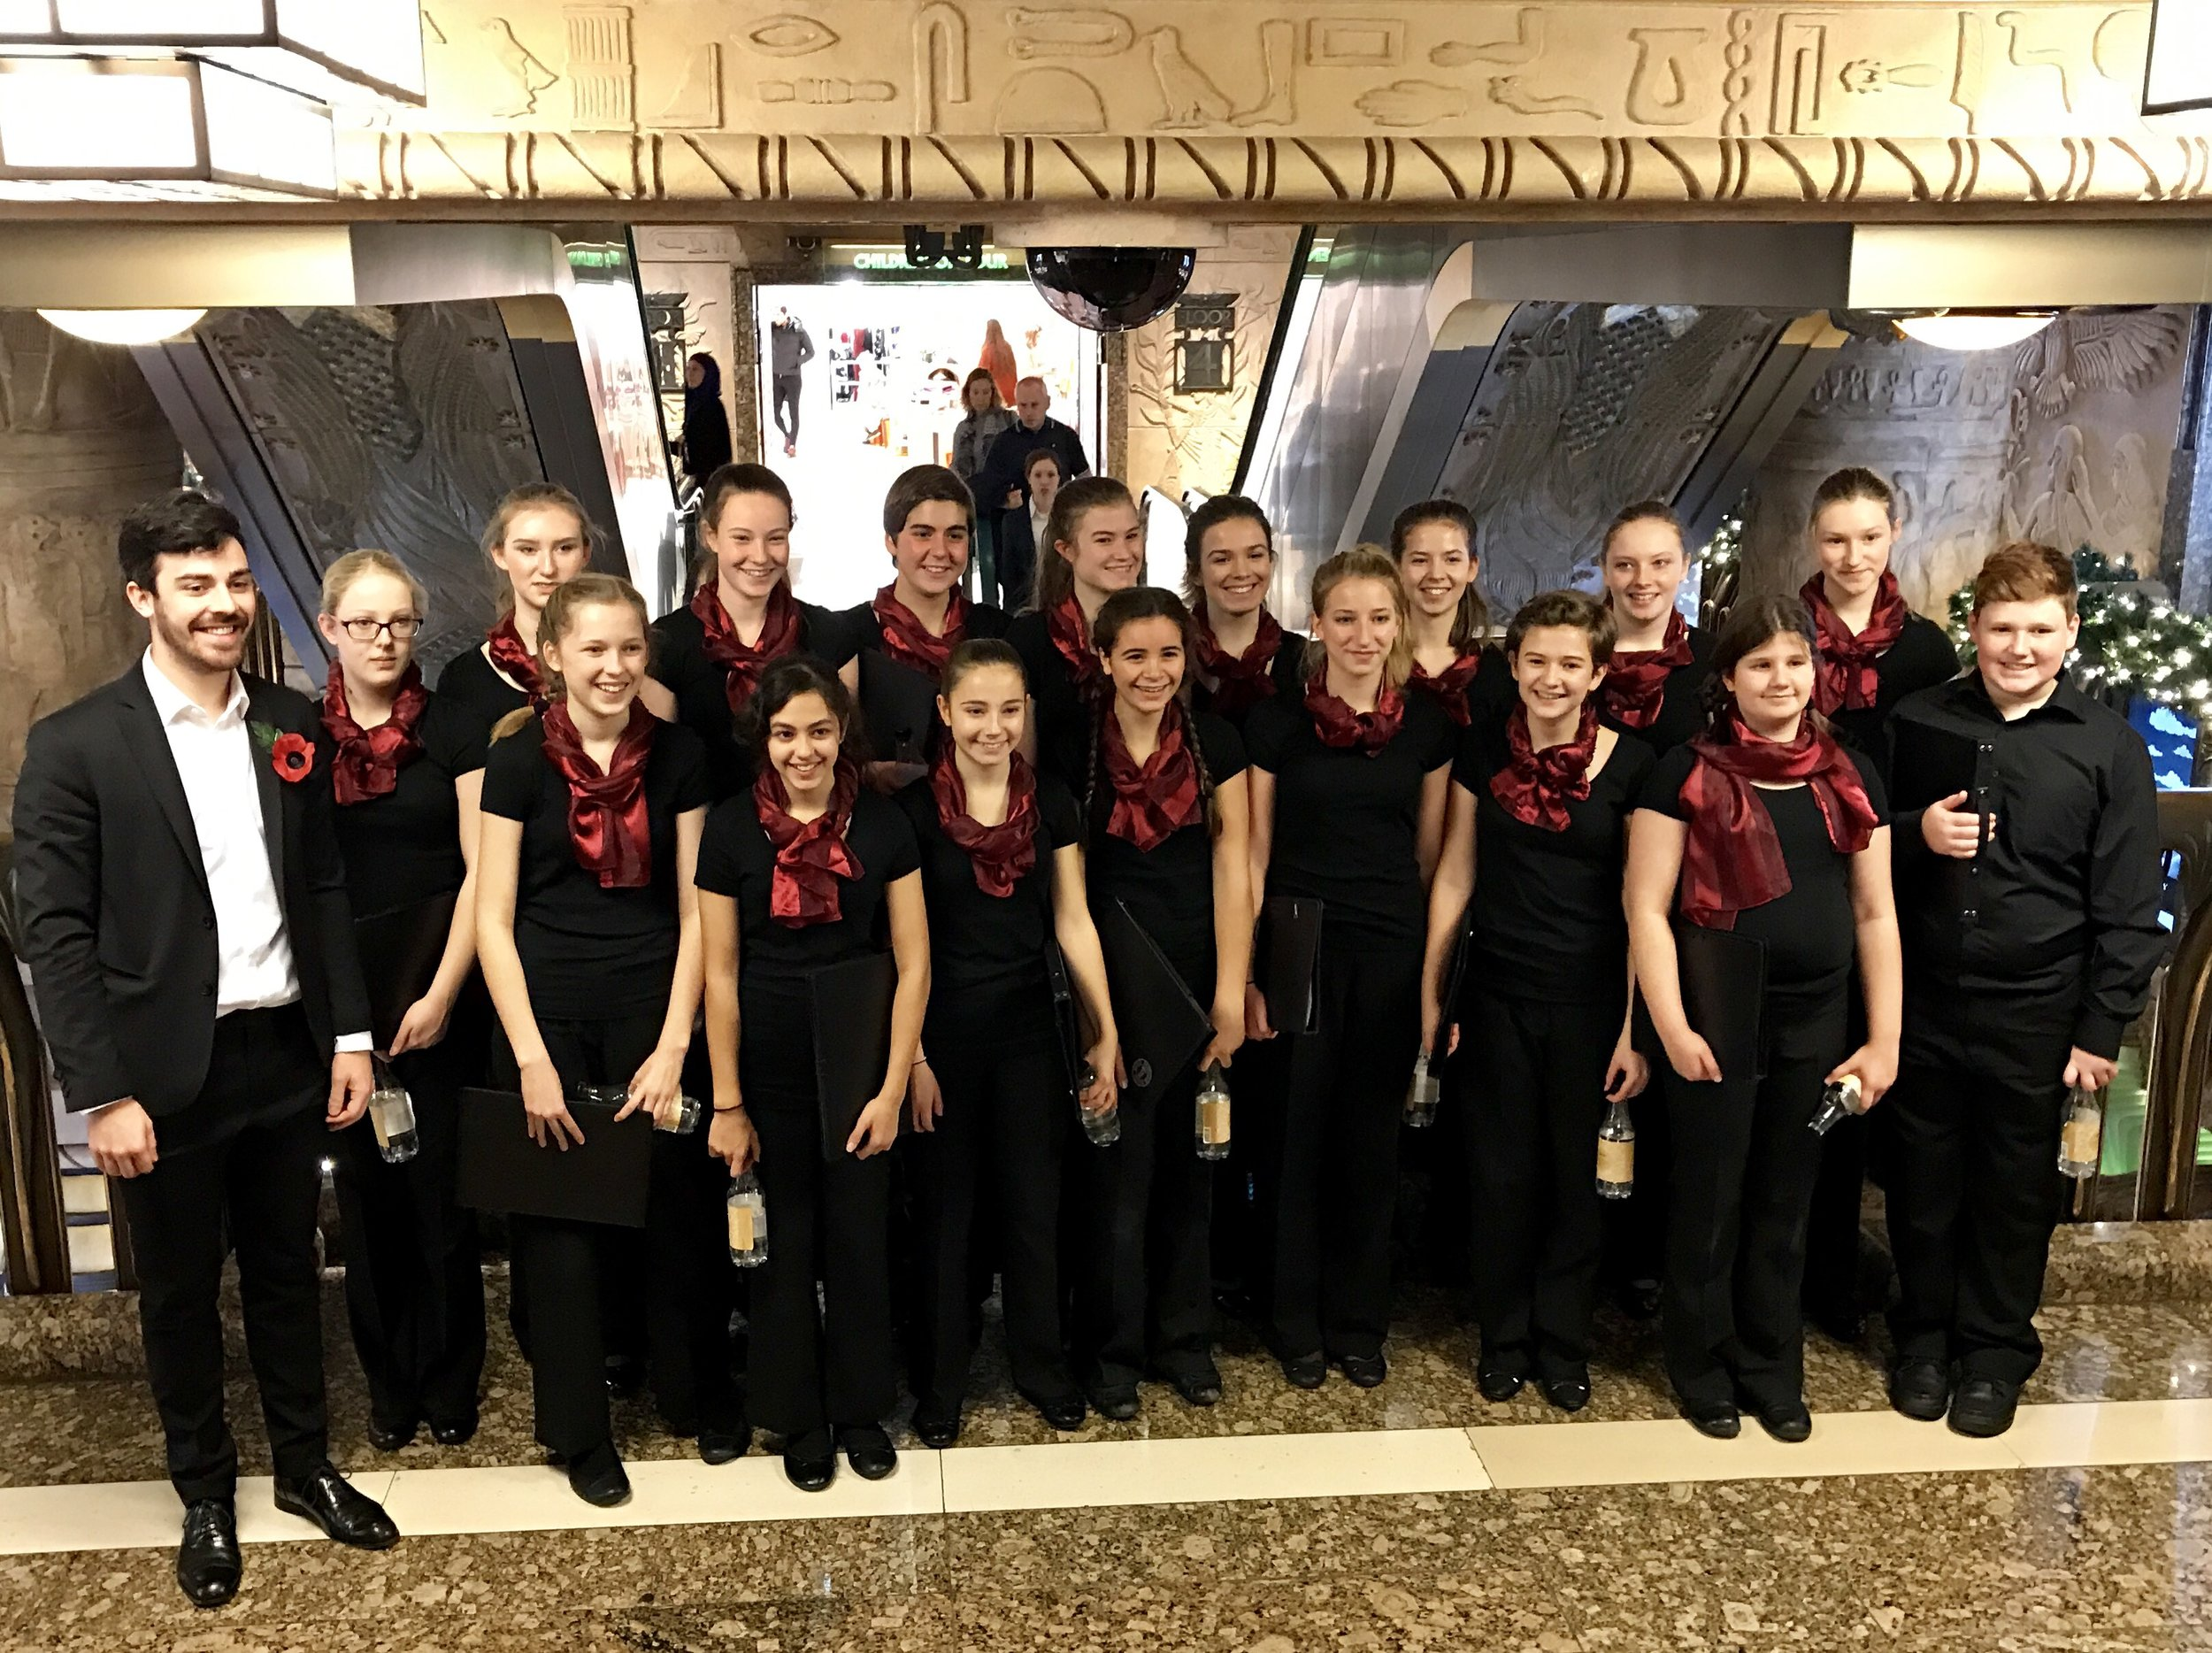 Patrick and the choir after singing carols between 4pm and 5pm at the Egyptian escalator in Harrods on 13th November.